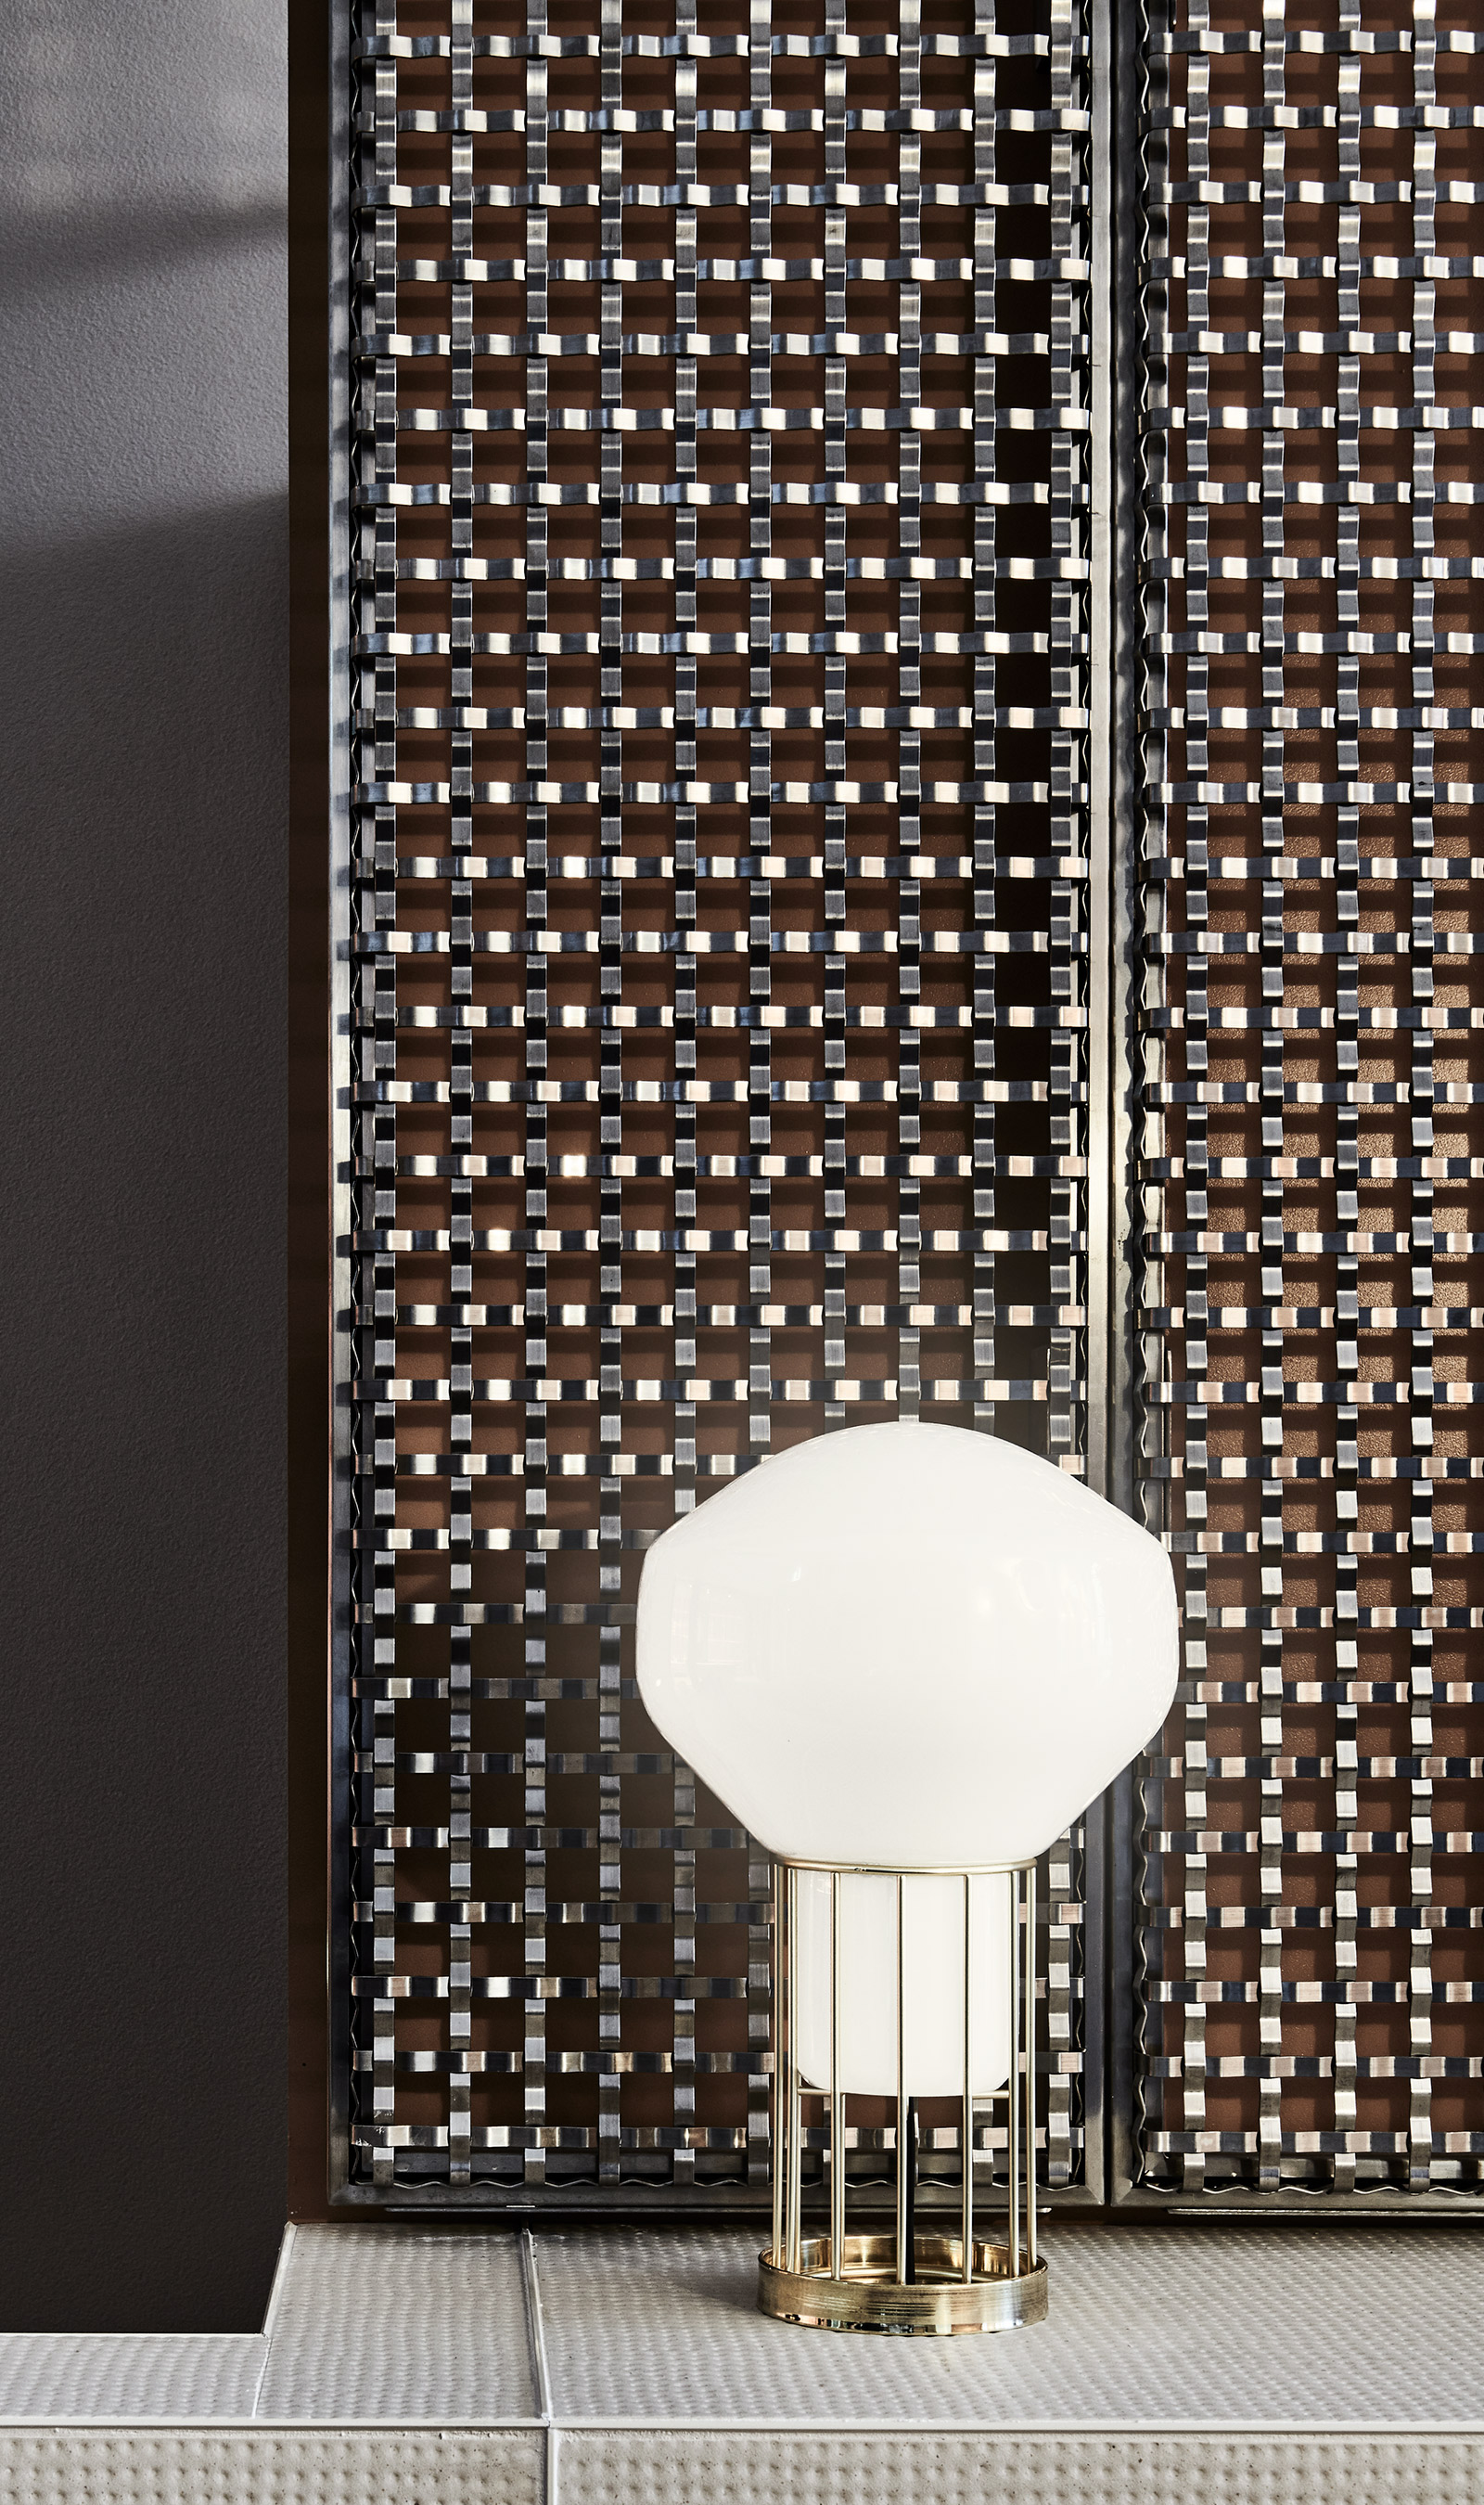 Sunlight reflects off the flat wire pattern of S-15 creating a sparkle and unique visual texture to the room.